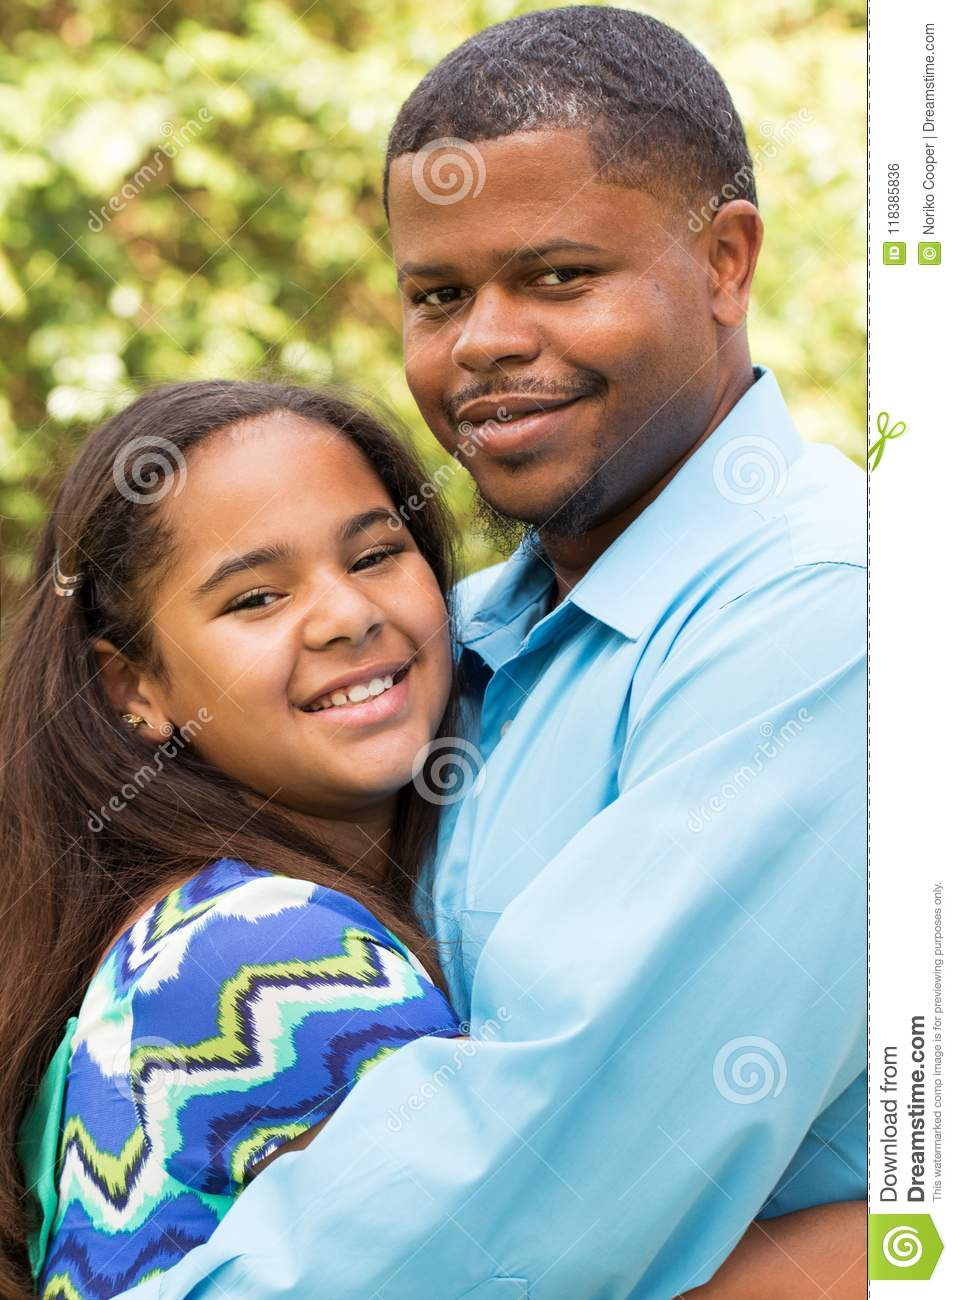 Download Happy African American Family. Stock Photo - Image of closeup, happiness: 118385836